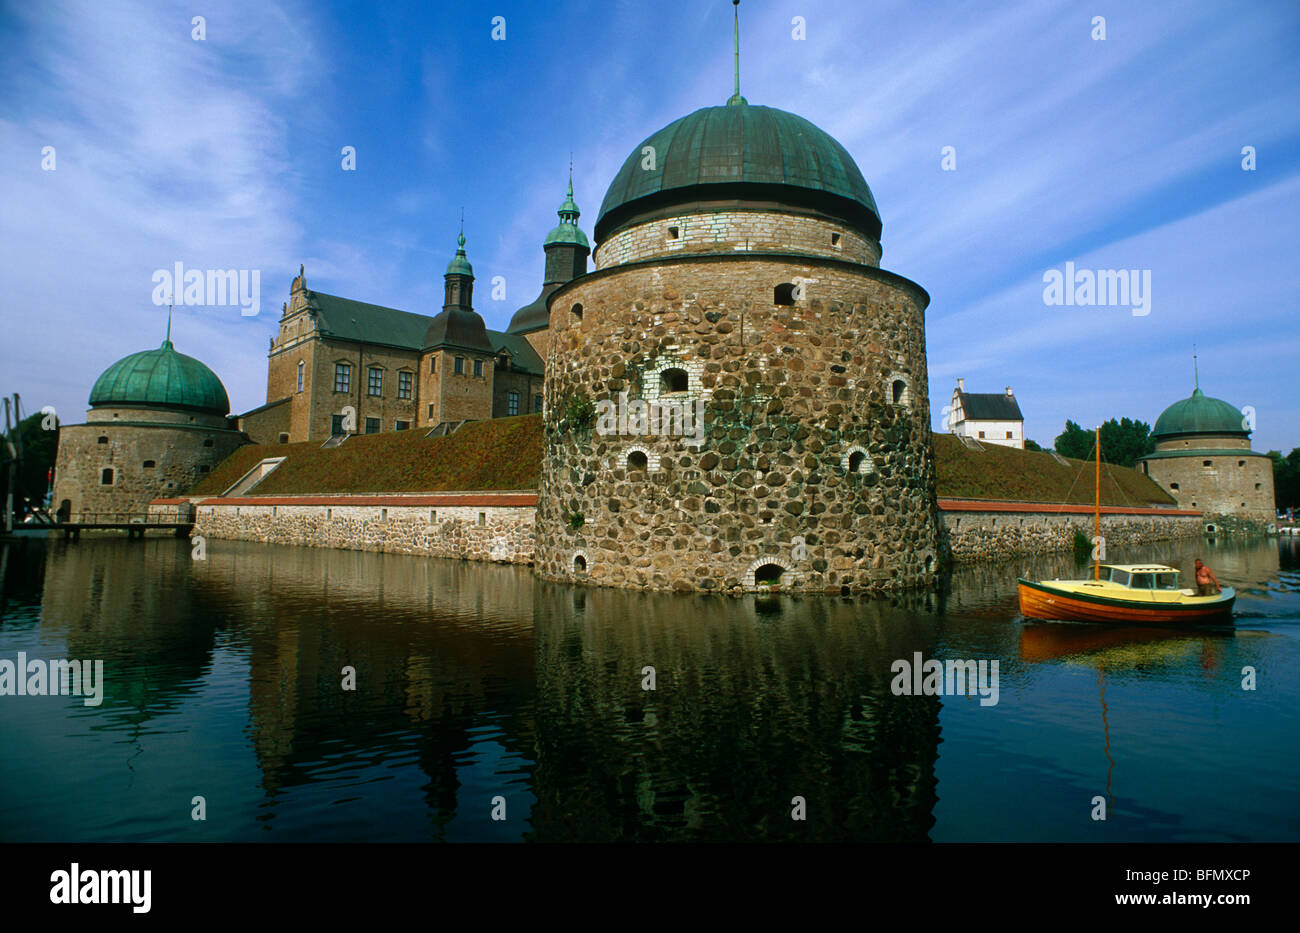 Sweden Ostergotland Vadstena The 16th Century Vadstena Castle Or Stock Photo Alamy